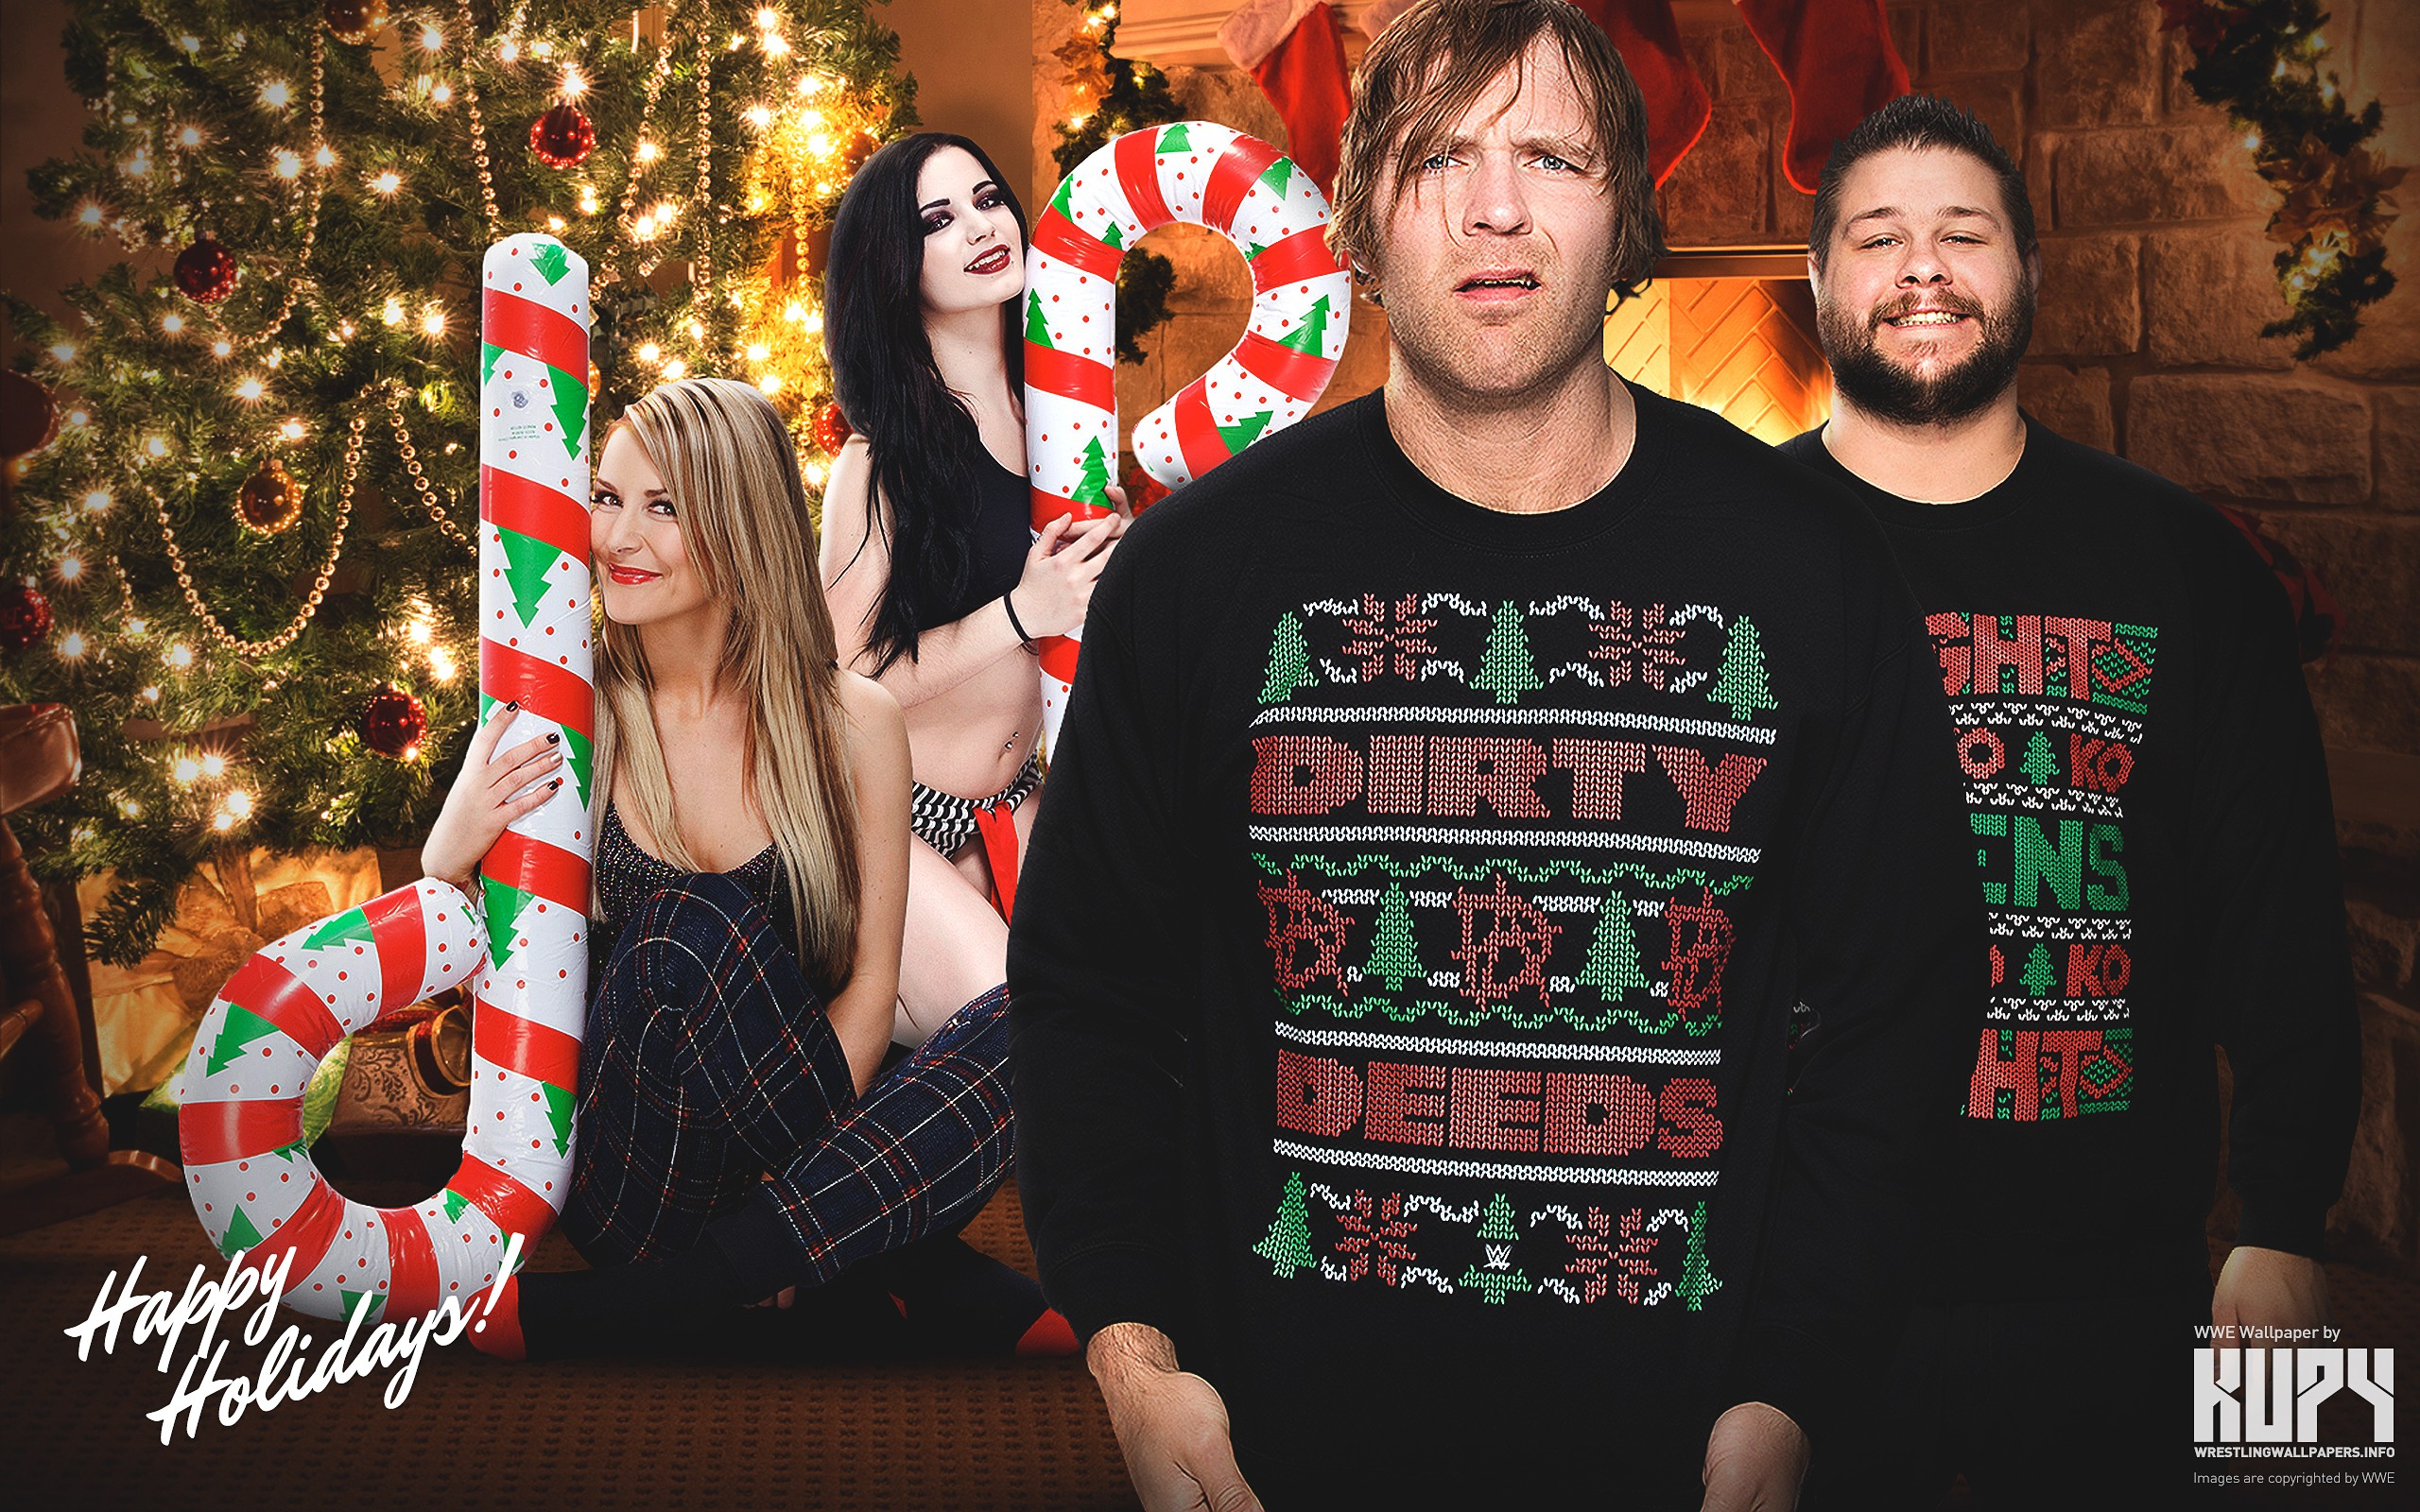 bullet club wallpaper hd,christmas,event,fun,holiday,photography